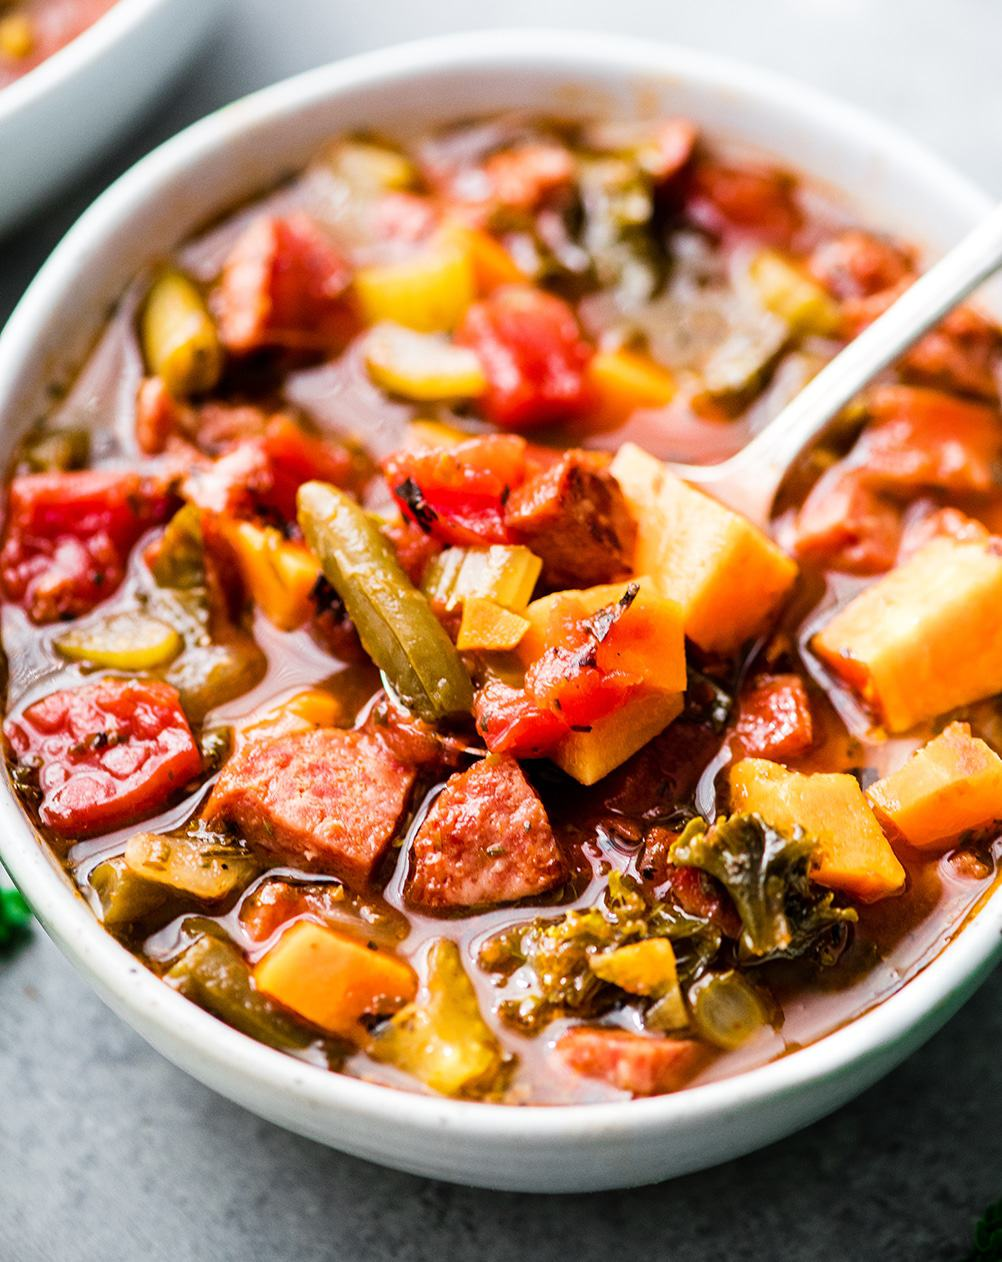 Kale , sausage and peppers in a bowl